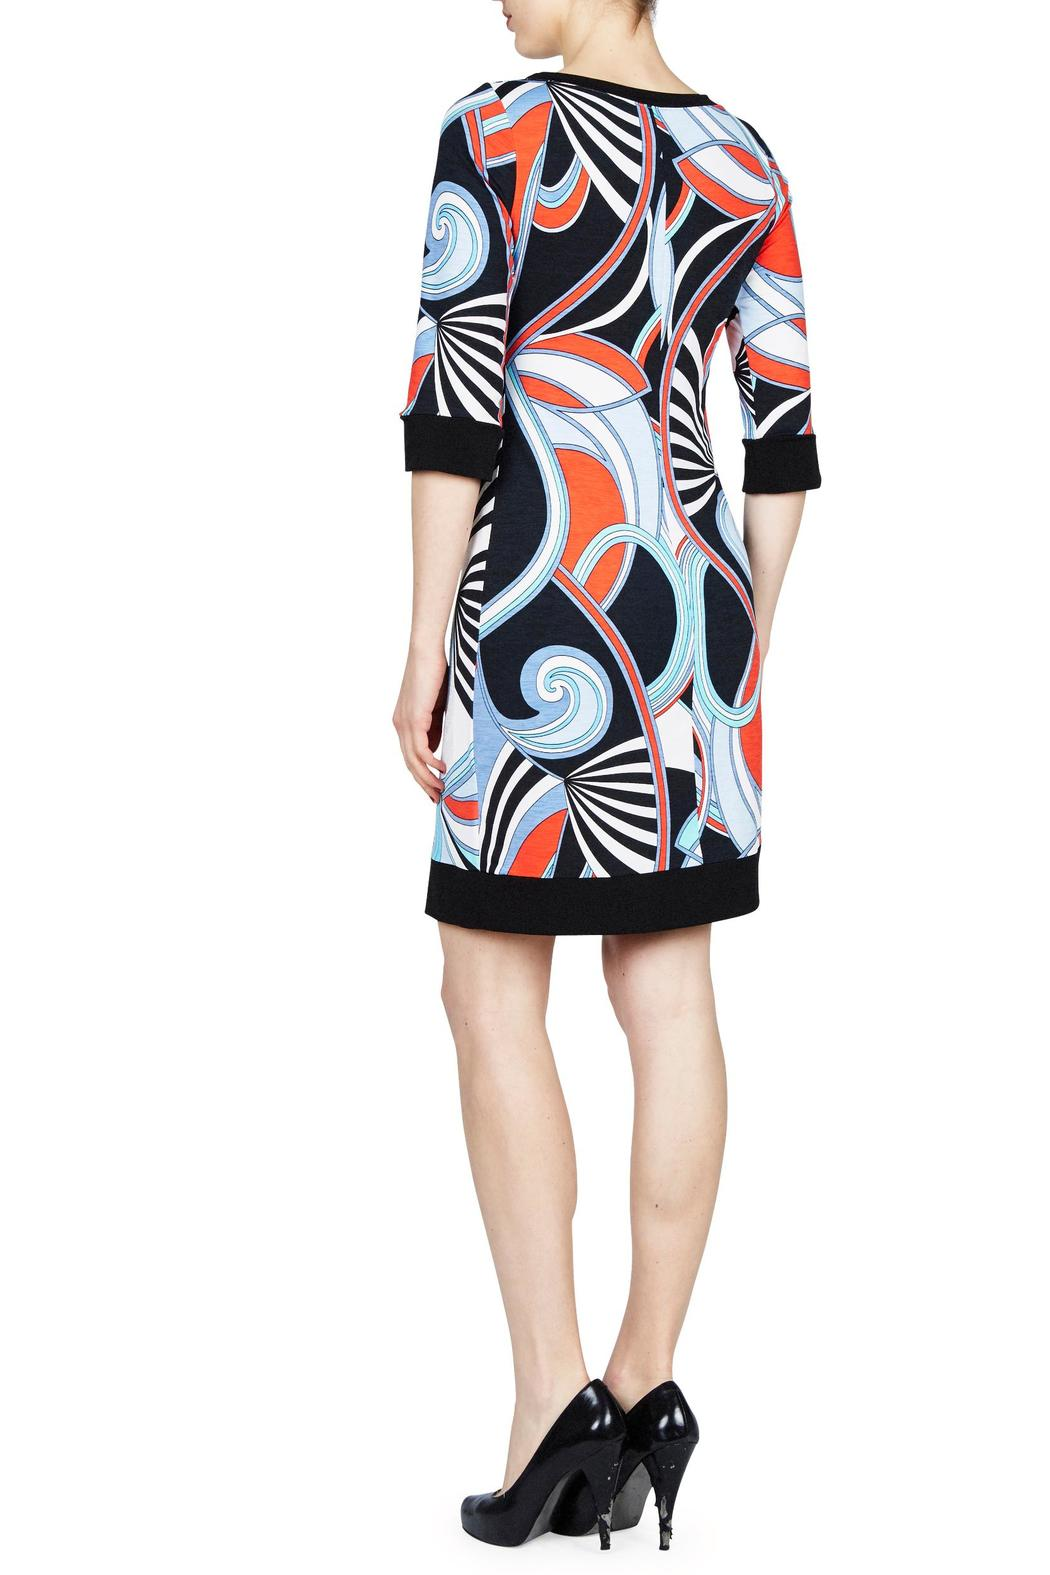 PAPILLON BLANC Swirl Shift Dress - Front Full Image